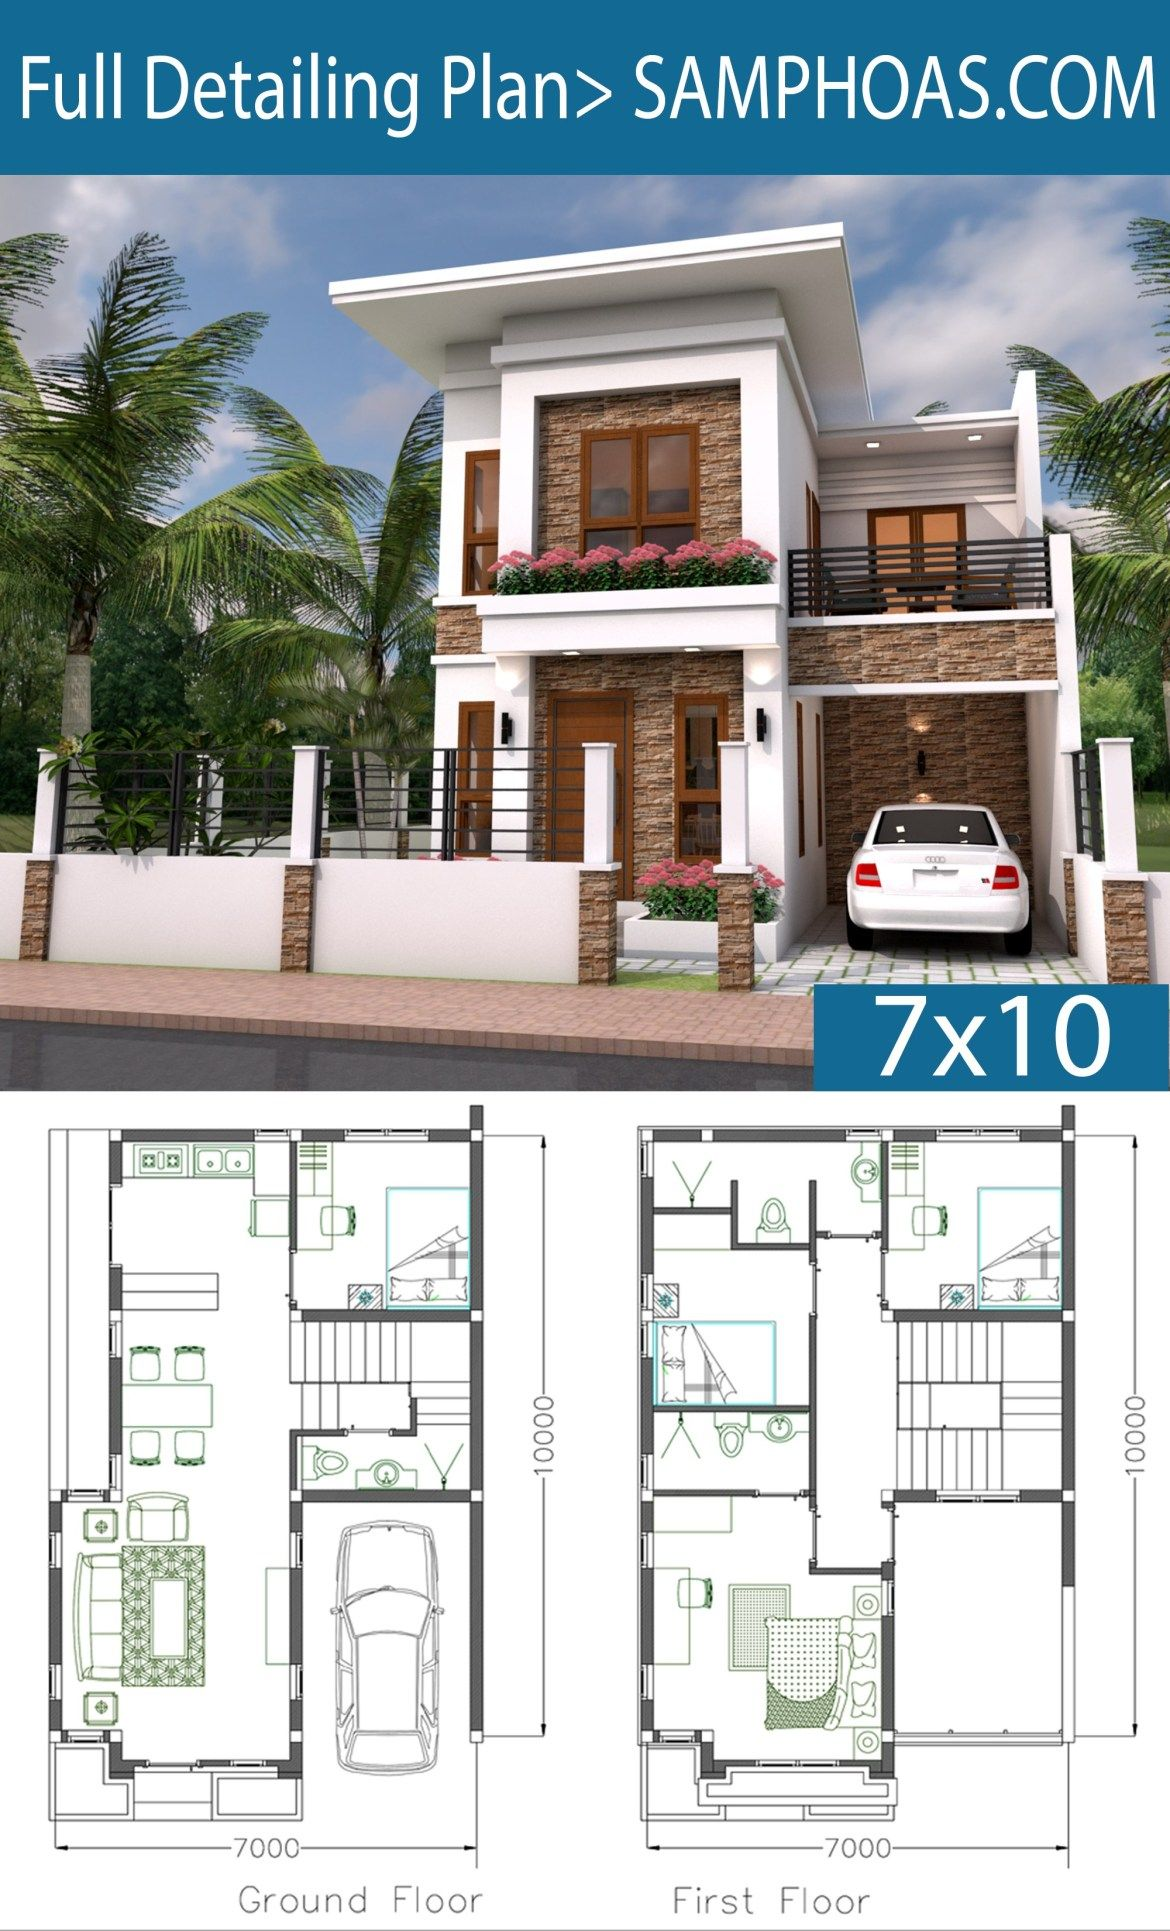 Remarkable Sketchup Speed Build Home Plan 7X10 Samphoas Plansearch Complete Home Design Collection Epsylindsey Bellcom